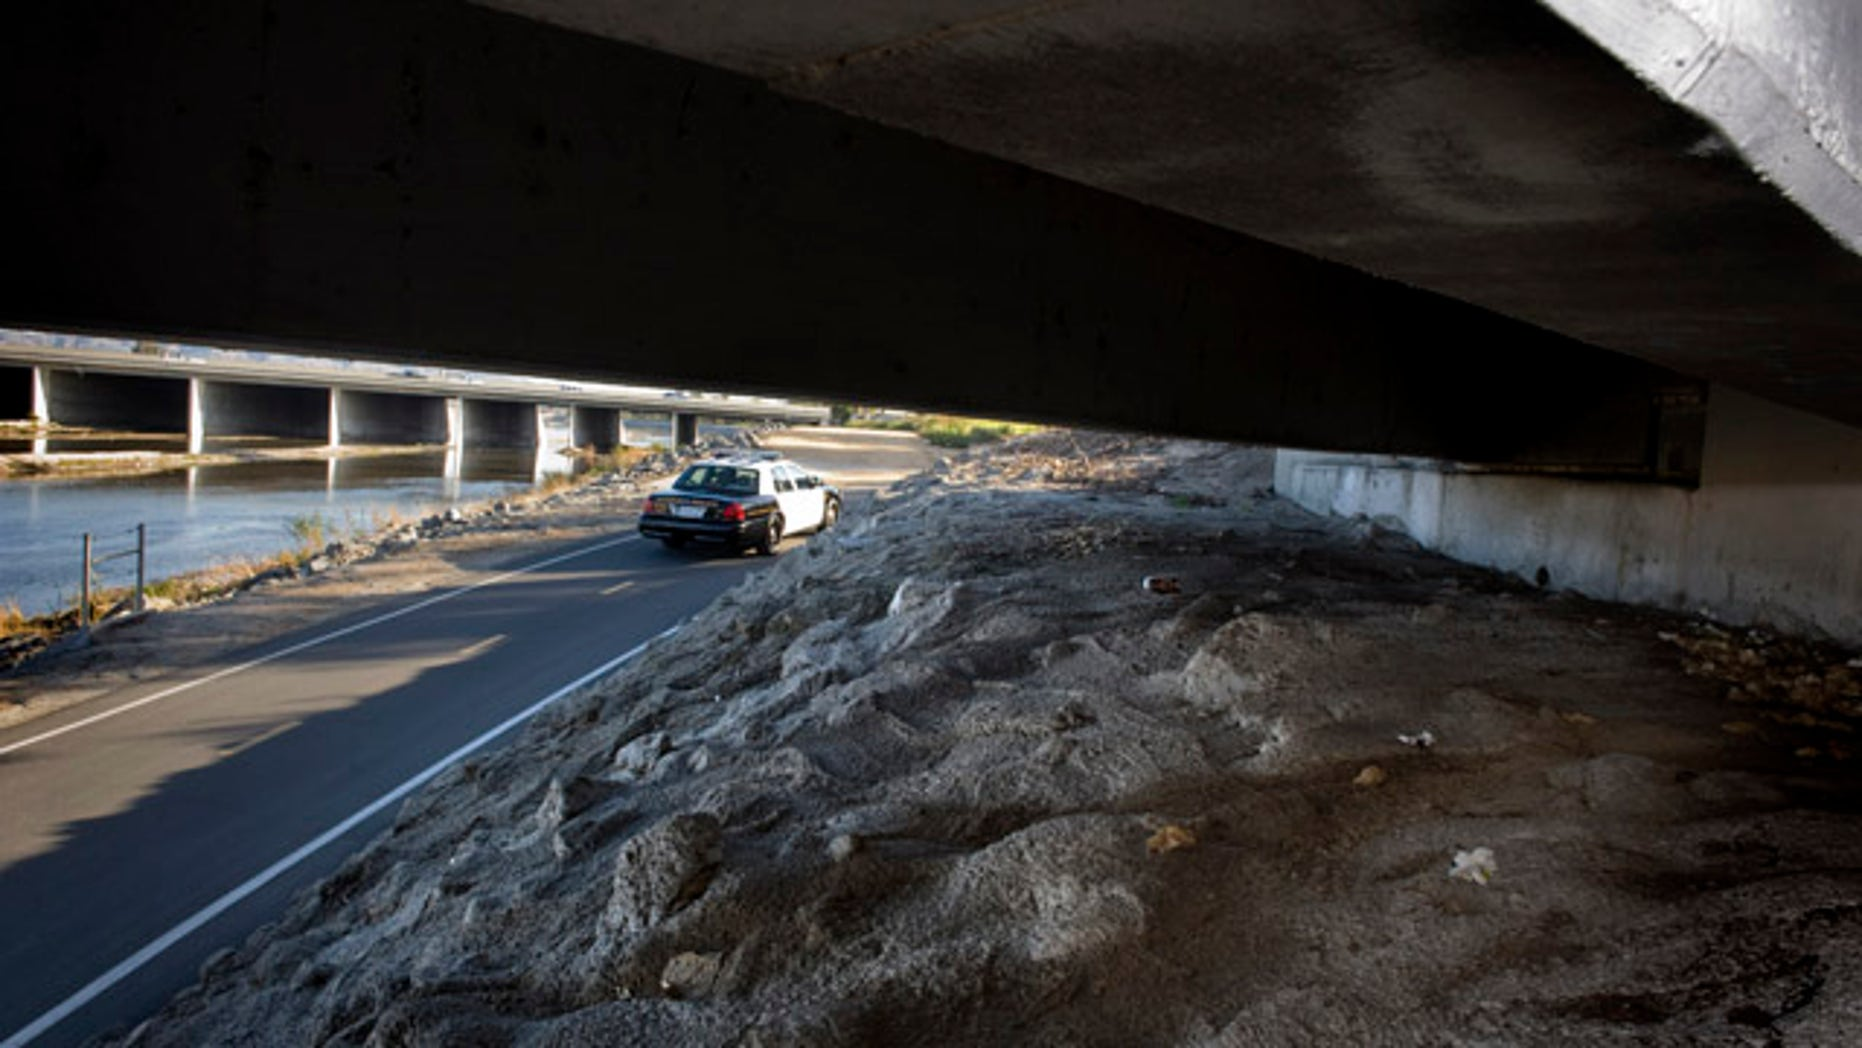 Jan. 3, 2012: A number of personal belongings lay under the Tustin Avenue bridge on the Santa Ana River Trail in Anaheim, Calif., just a few 100 yards to the west of the fatal stabbing of transient Lloyd Middaugh, 42.  Anaheim Police Chief John Welter told a news conference Wednesday, Jan. 4, 2012 that last month's slayings of three homeless men were likely the work of a serial killer. Authorities believe one person is responsible for the stabbing deaths, which occurred between Dec. 20 and Dec. 30, Welter said. In each case, a middle-aged man was targeted.